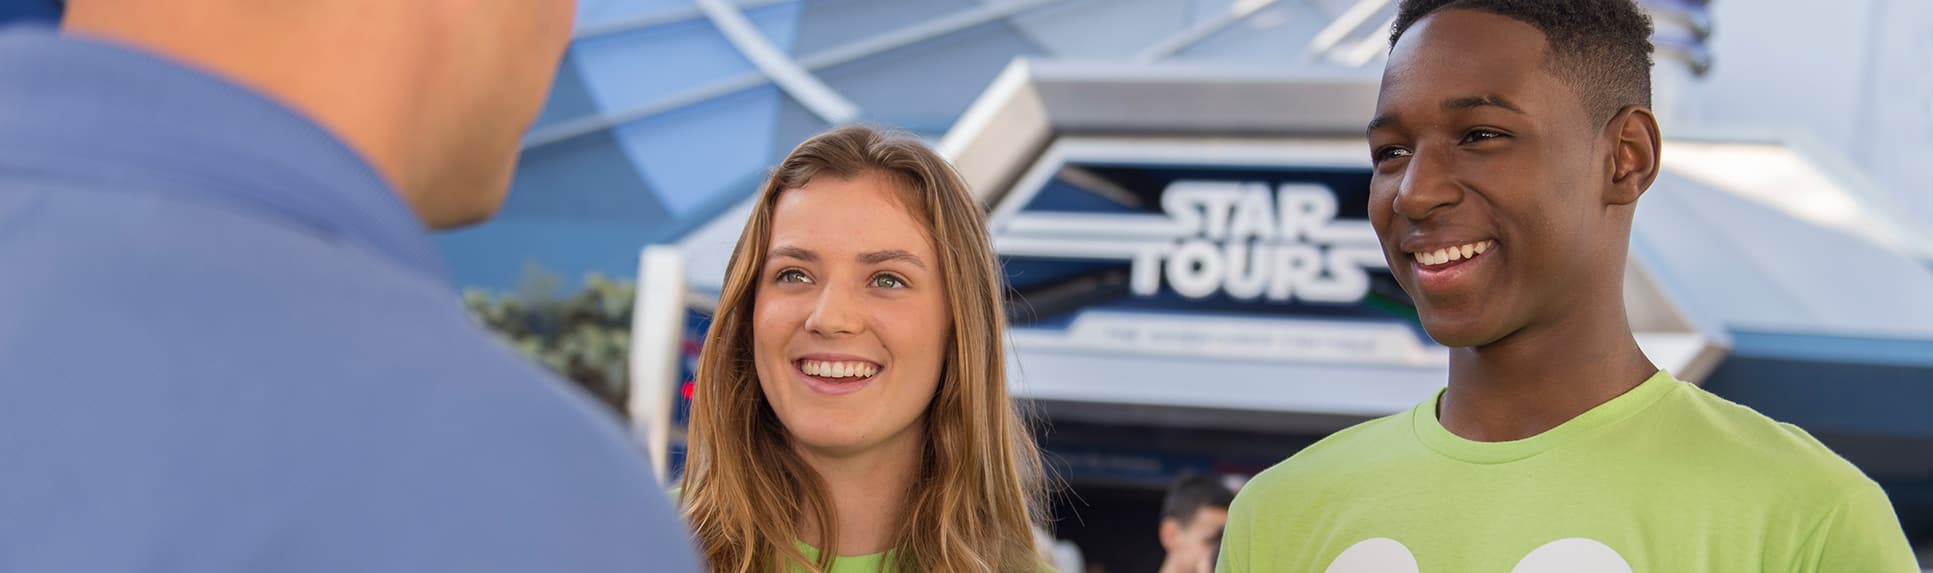 A young woman and 2 young men wearing Disney tee shirts smile as they chat with another man outside the Star Tours attraction